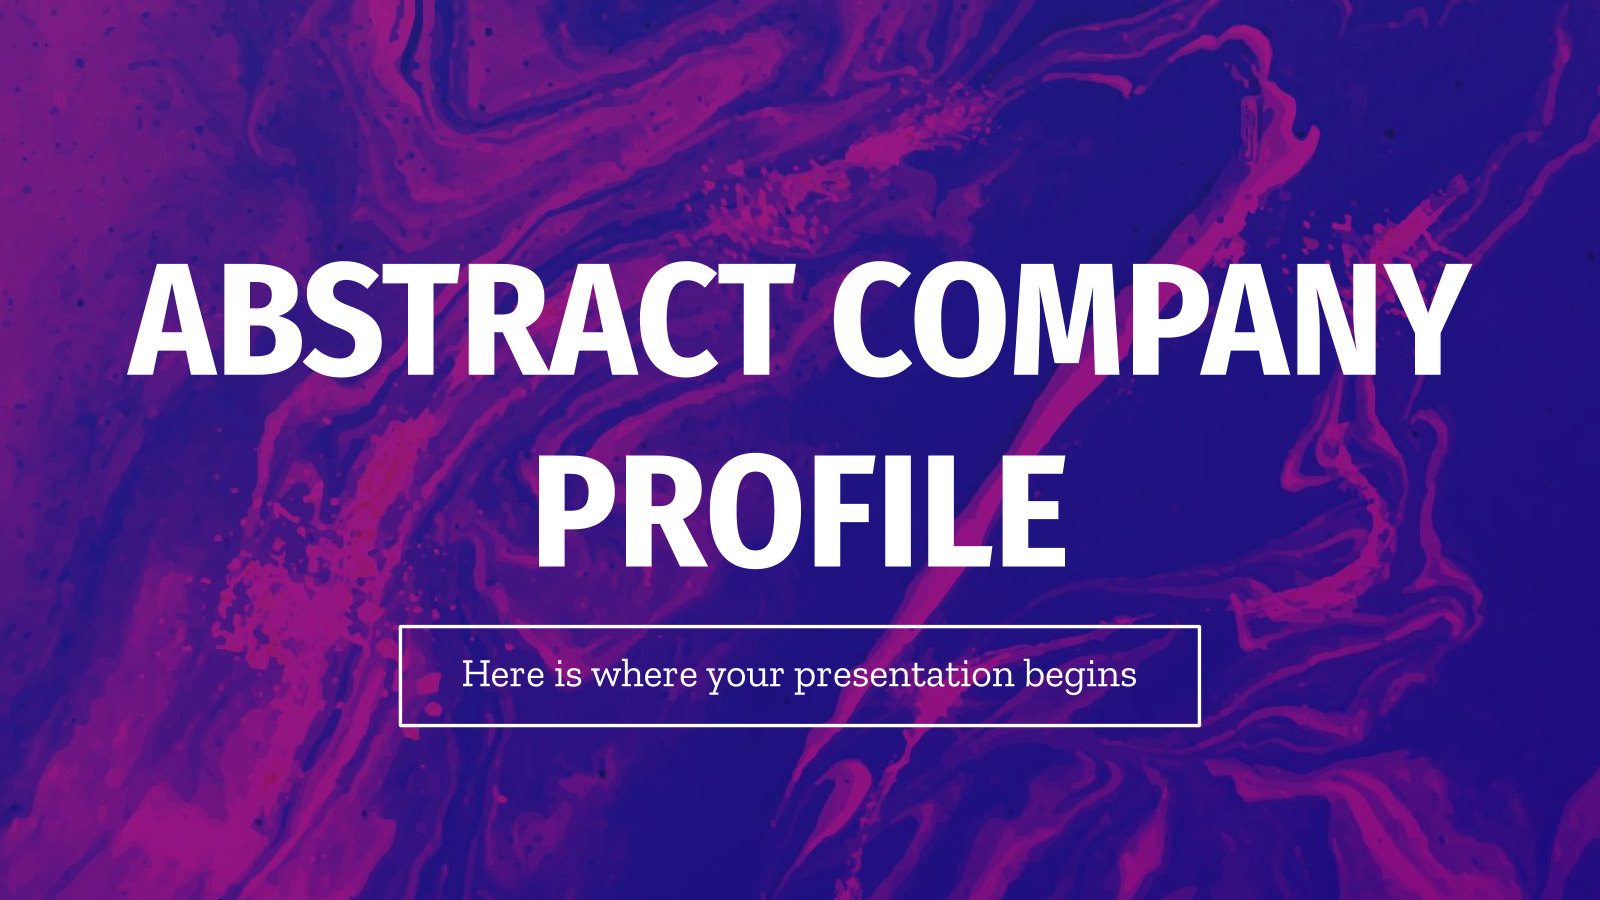 Abstract Company Profile presentation template